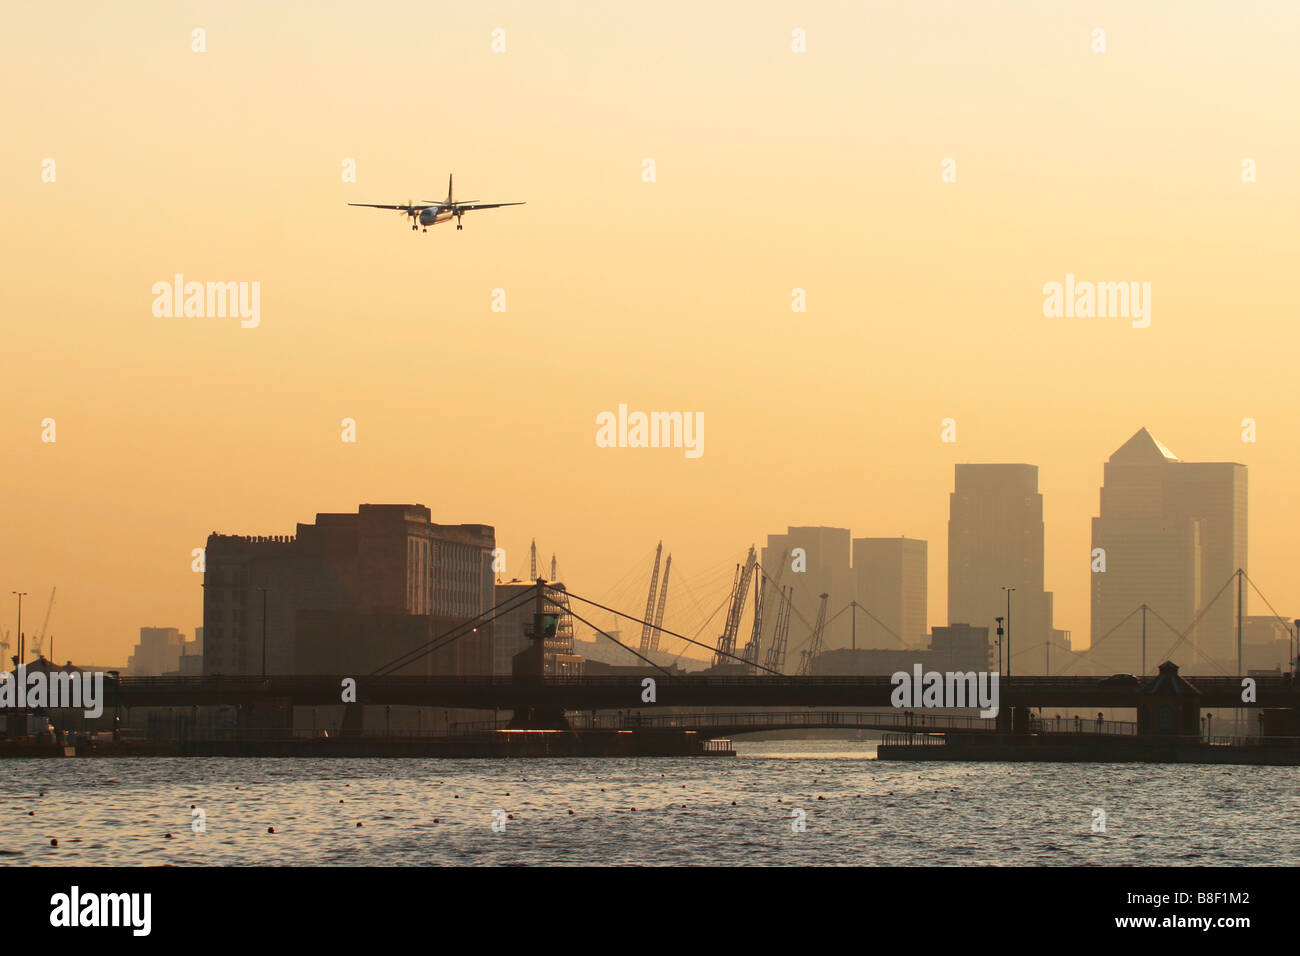 Regional airliner landing at London City Airport with Canary Wharf Docklands in the background, UK - Stock Image